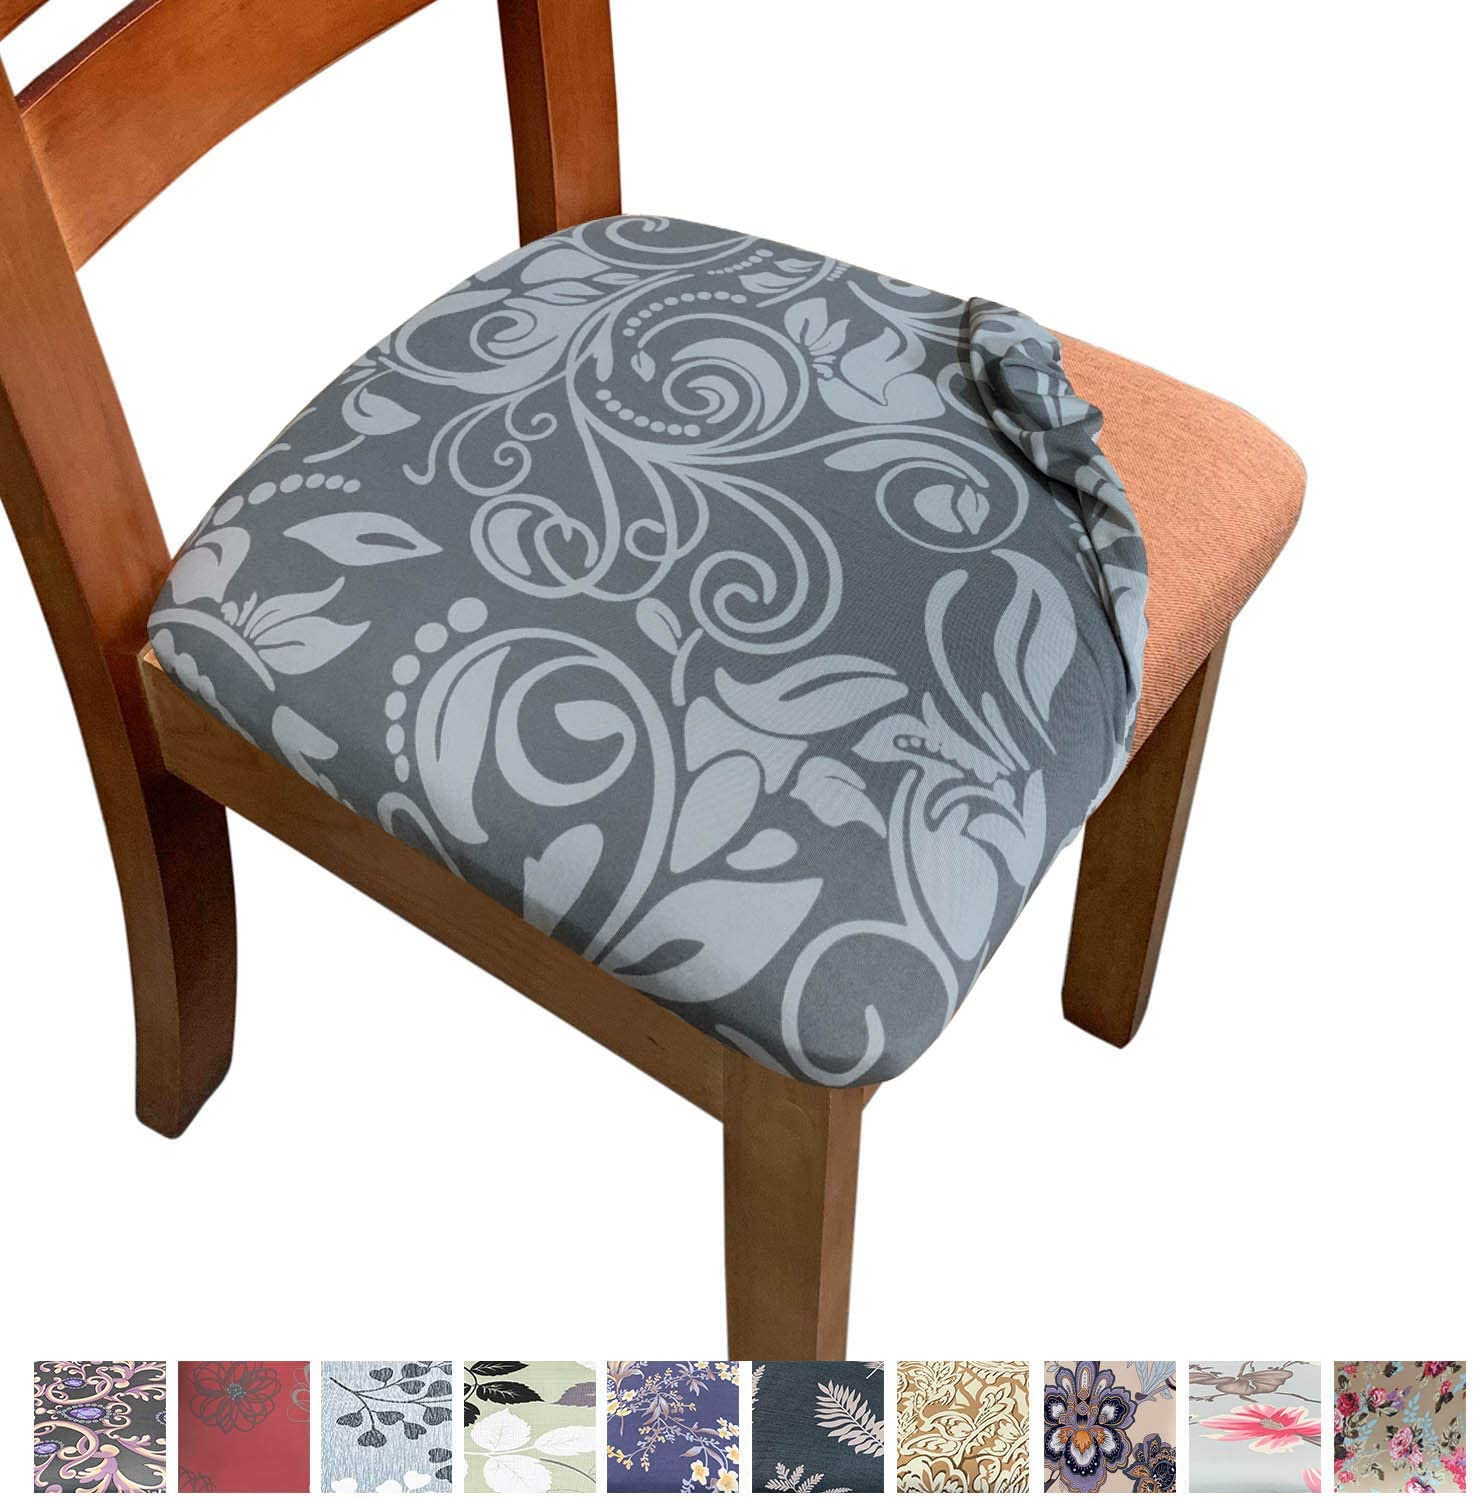 Melaluxe Stretch Printed Dining Room Chair Seat Covers, Removable Washable  Anti-Dust Upholstered Kitchen Chair Seat Cushion Slipcovers (Pack of 9)